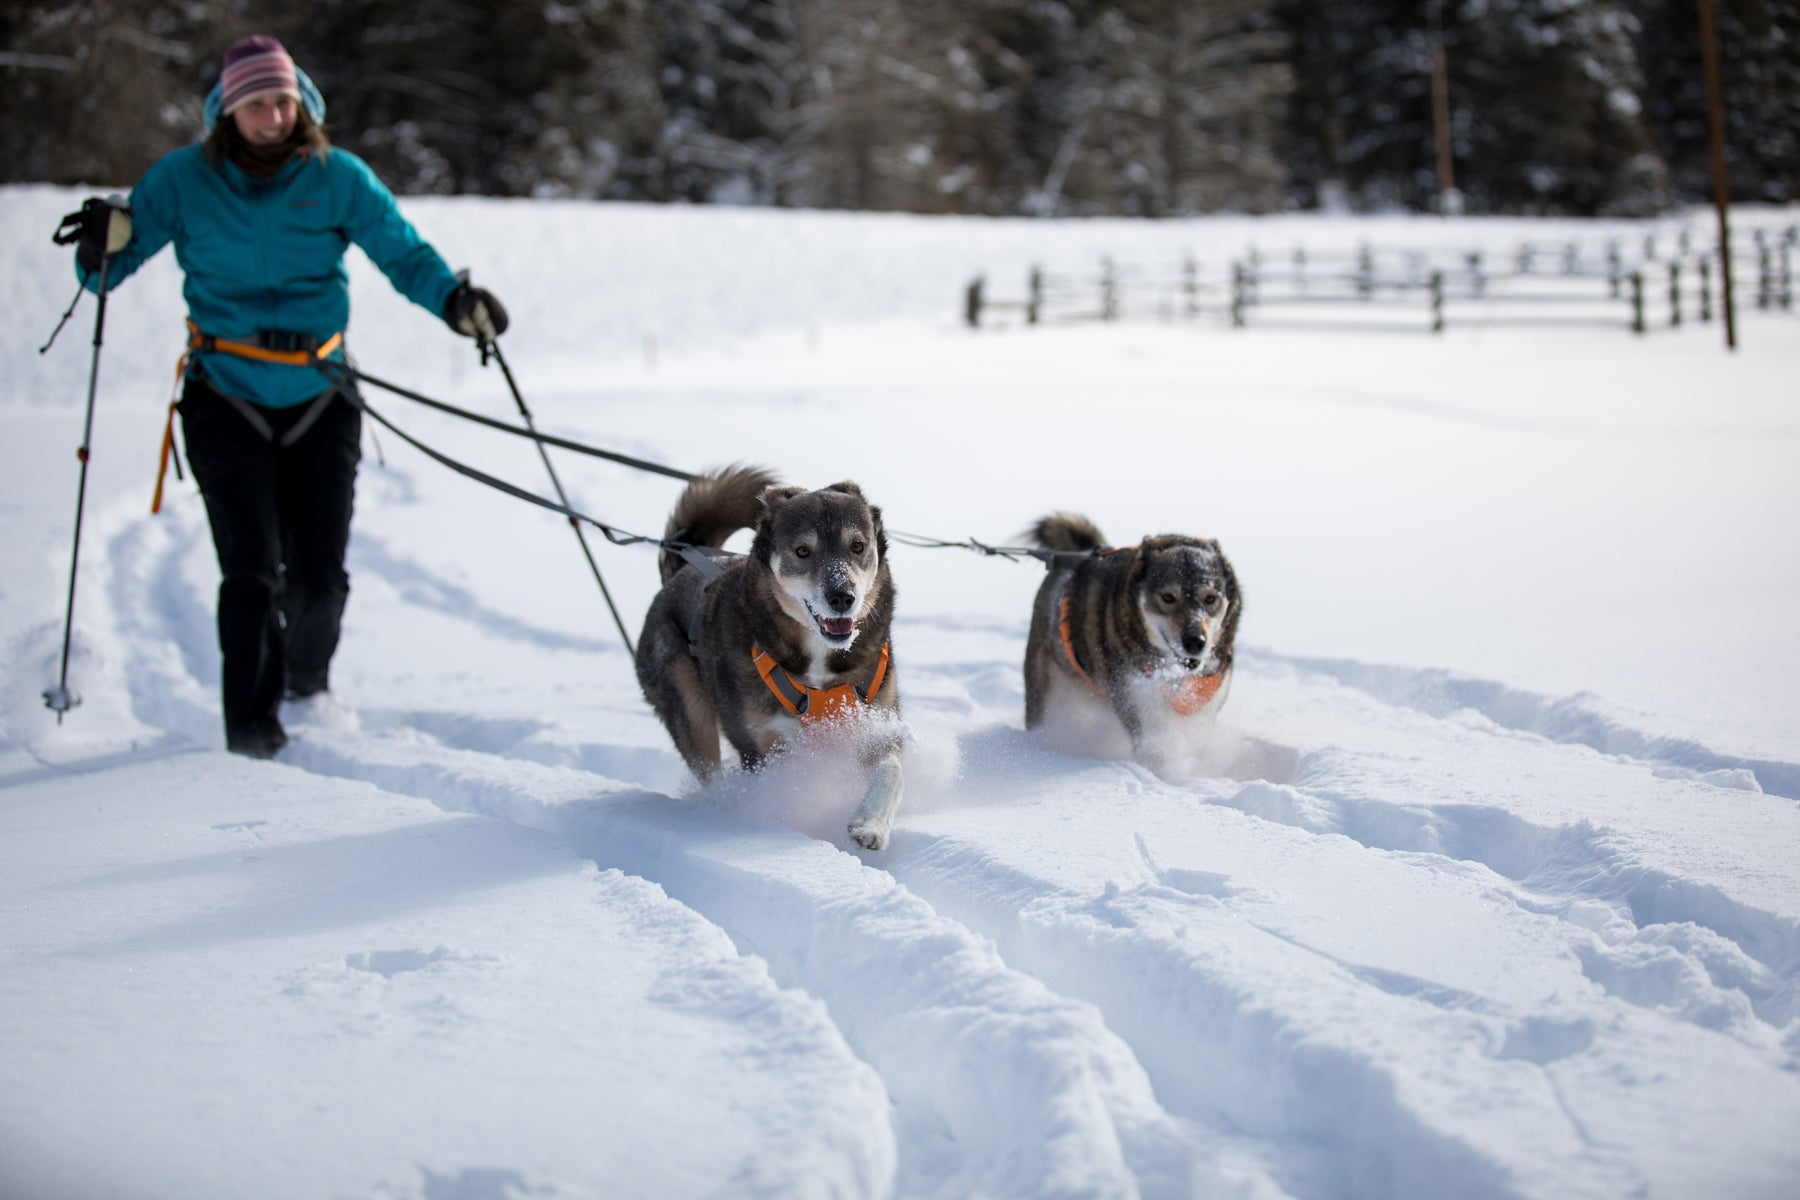 Two dogs run ahead of Darcie towing her on the Omnijore Dog SkiJoring system in the snow.